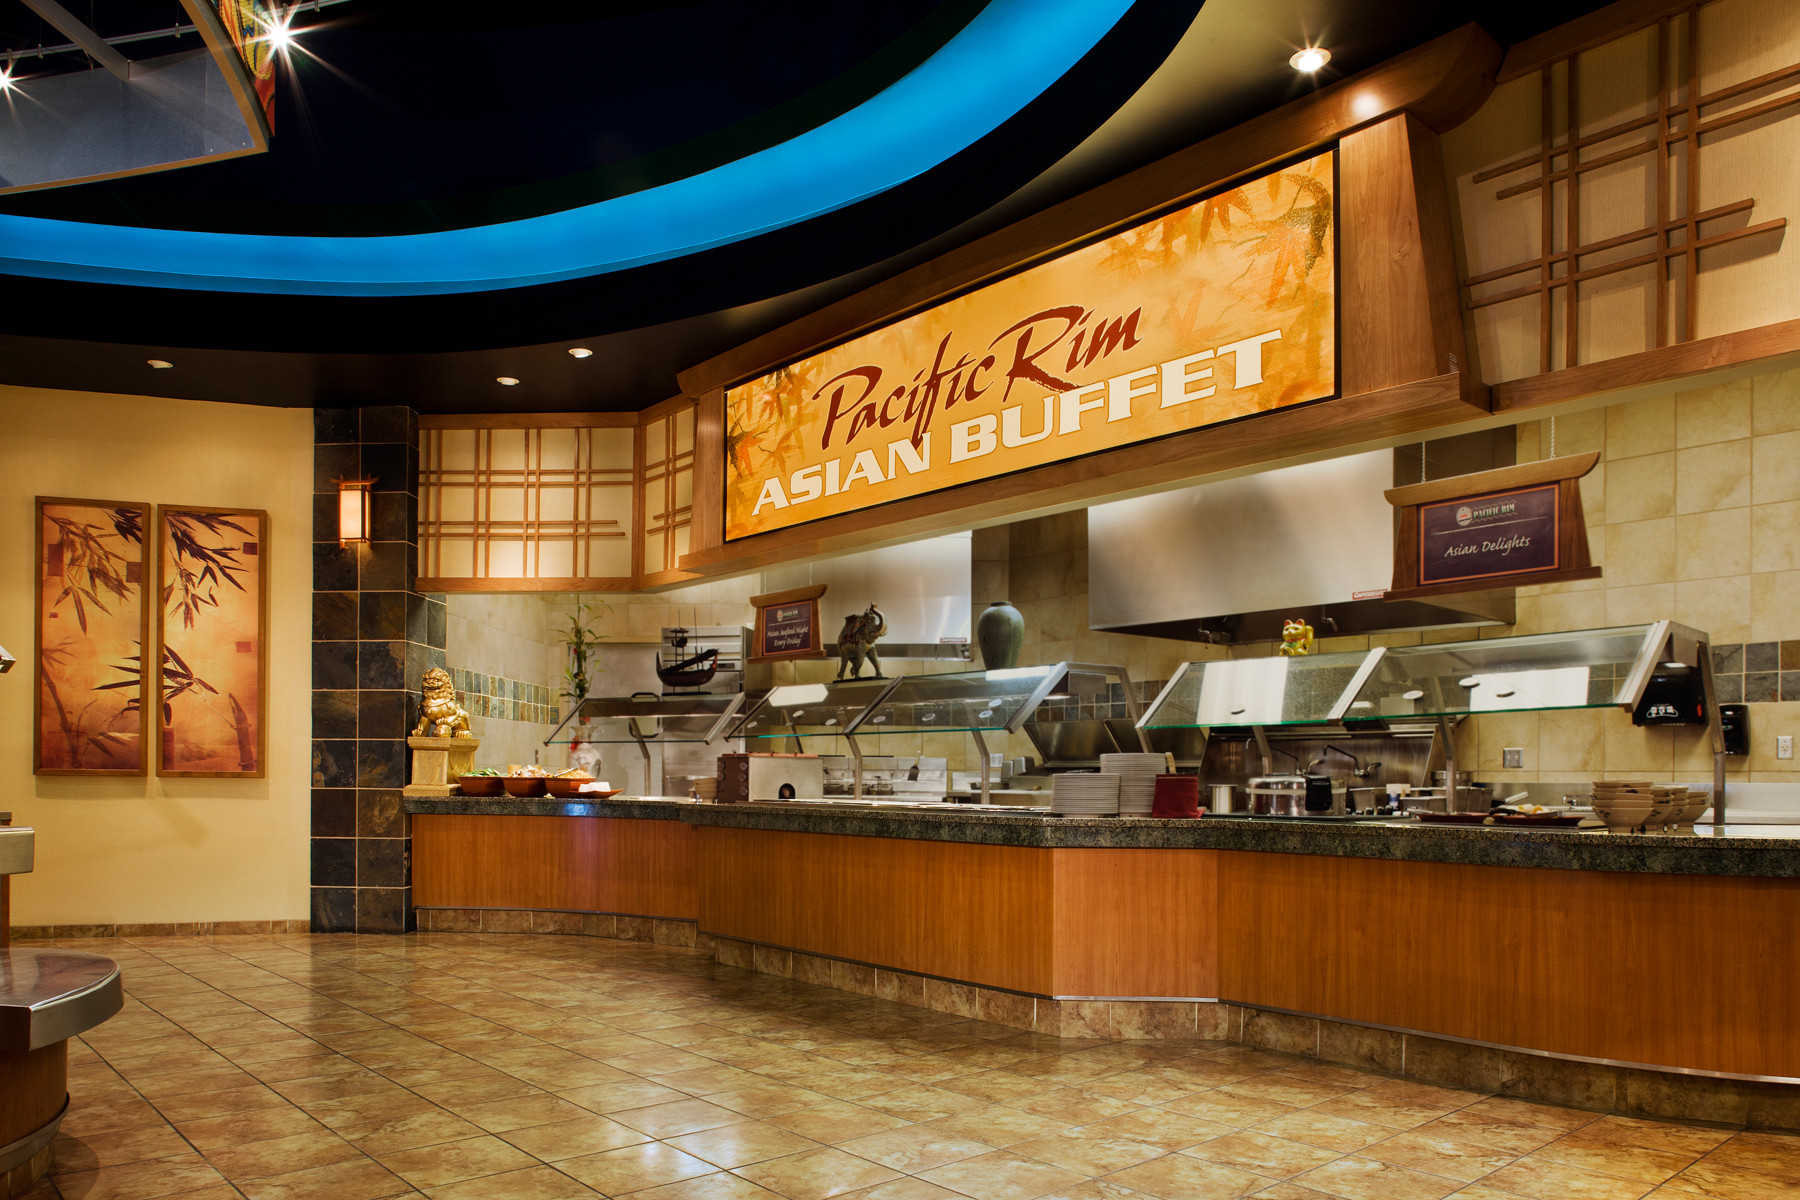 Buffet Cuisine Design Buffet 66 Casino Restaurant Design And Implementation By I